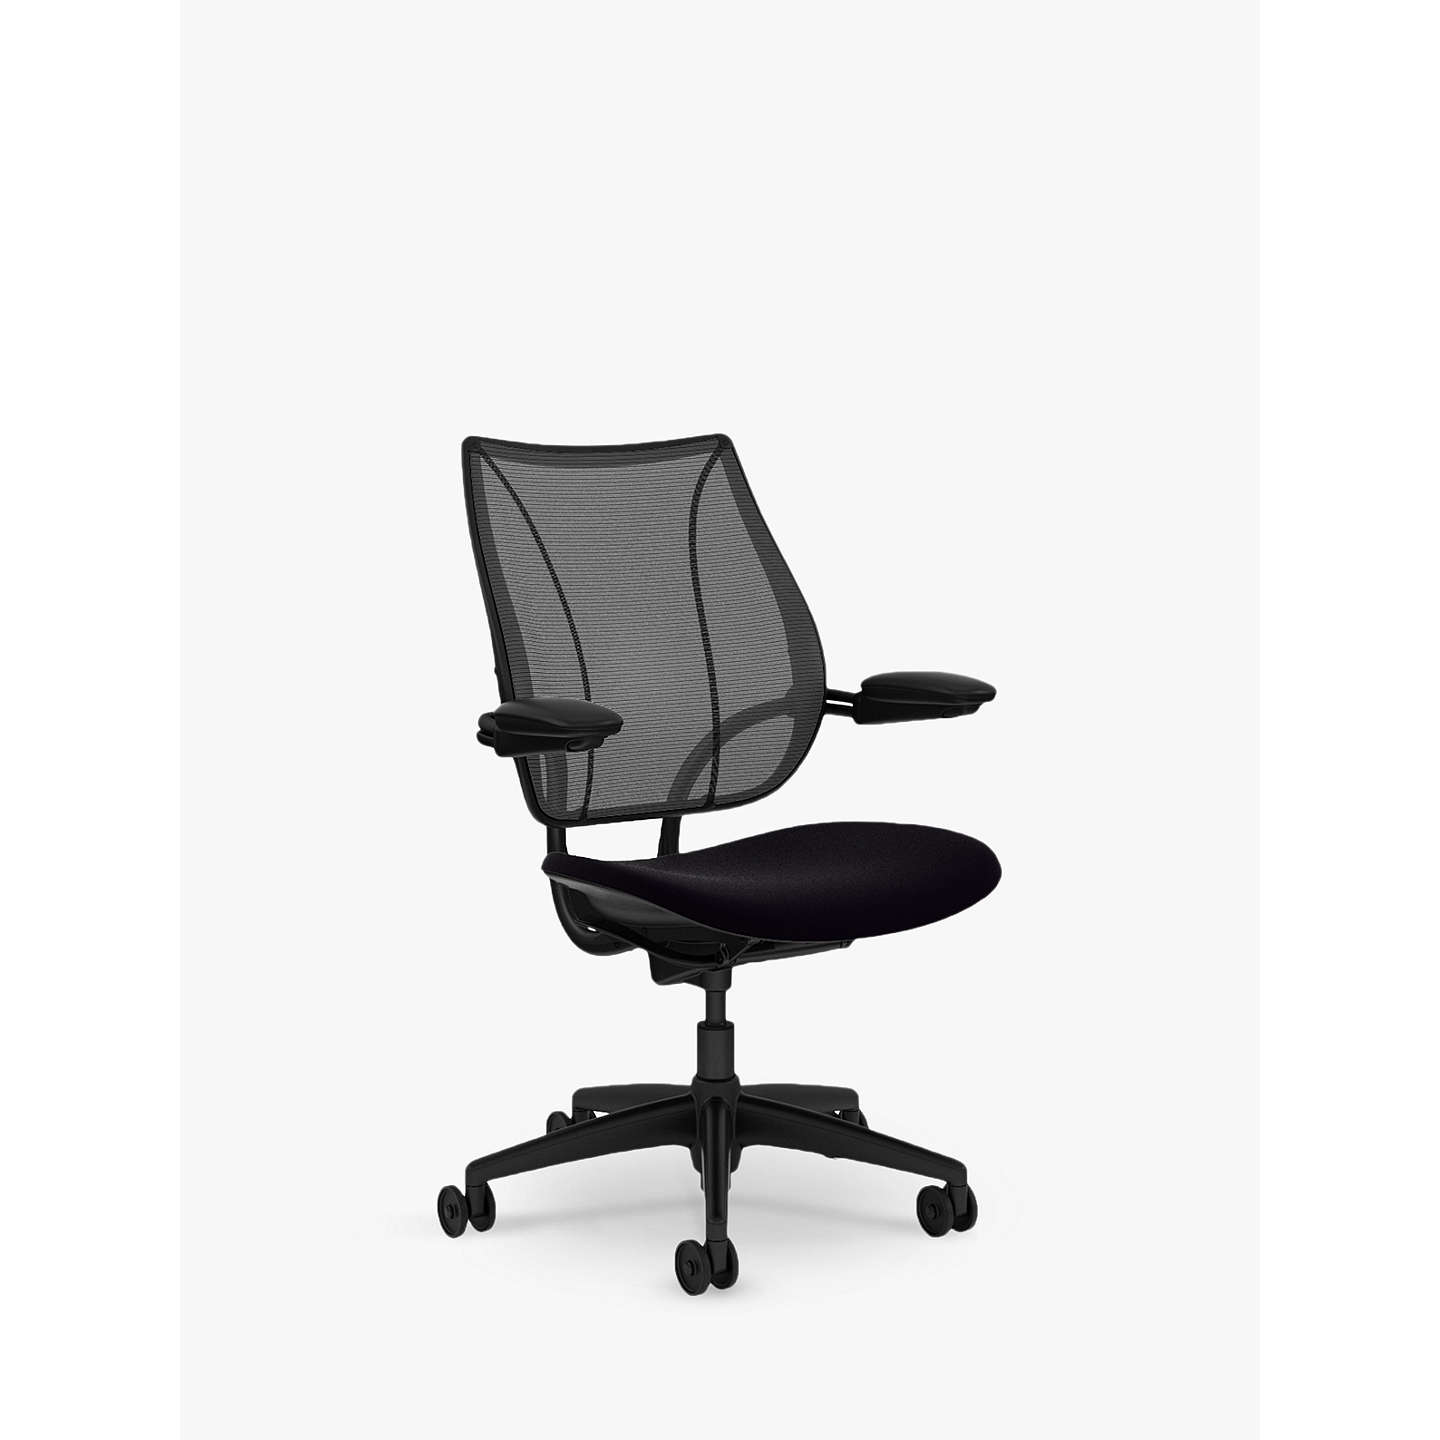 Humanscale Liberty Office Chair Black At John Lewis